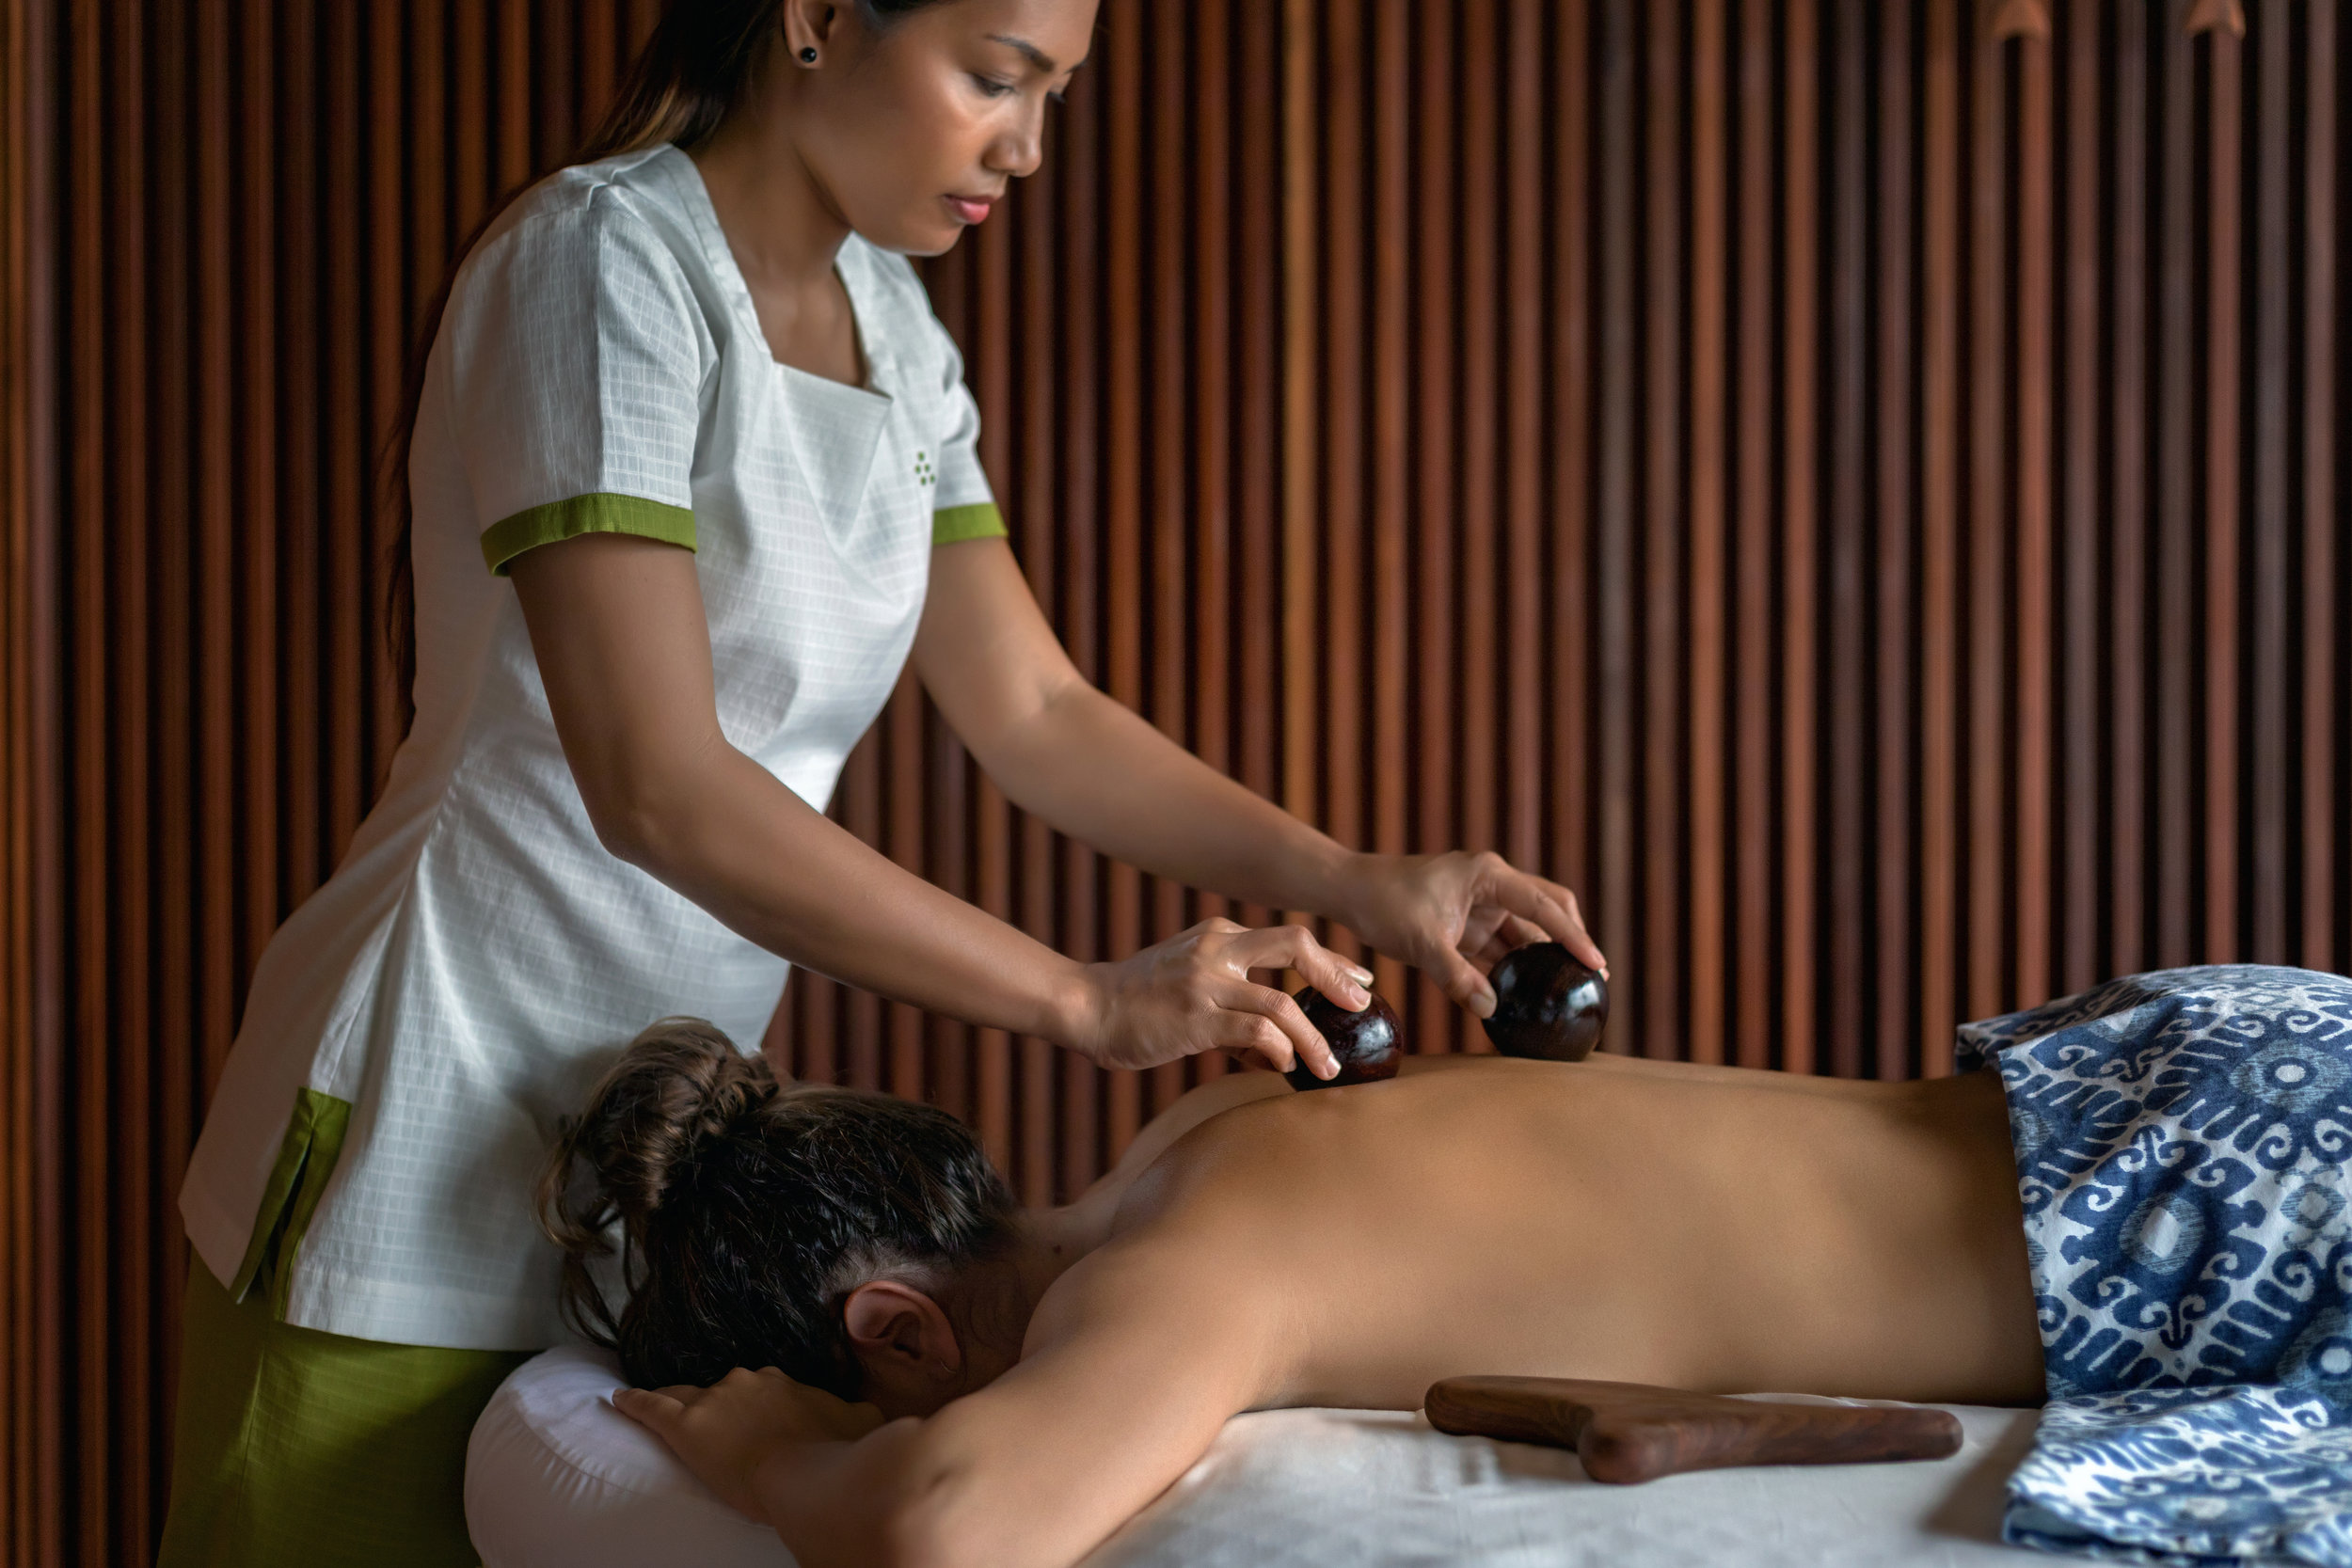 Spa_Treatment-Ocean-Journey-2_[8015-ORIGINAL].jpg